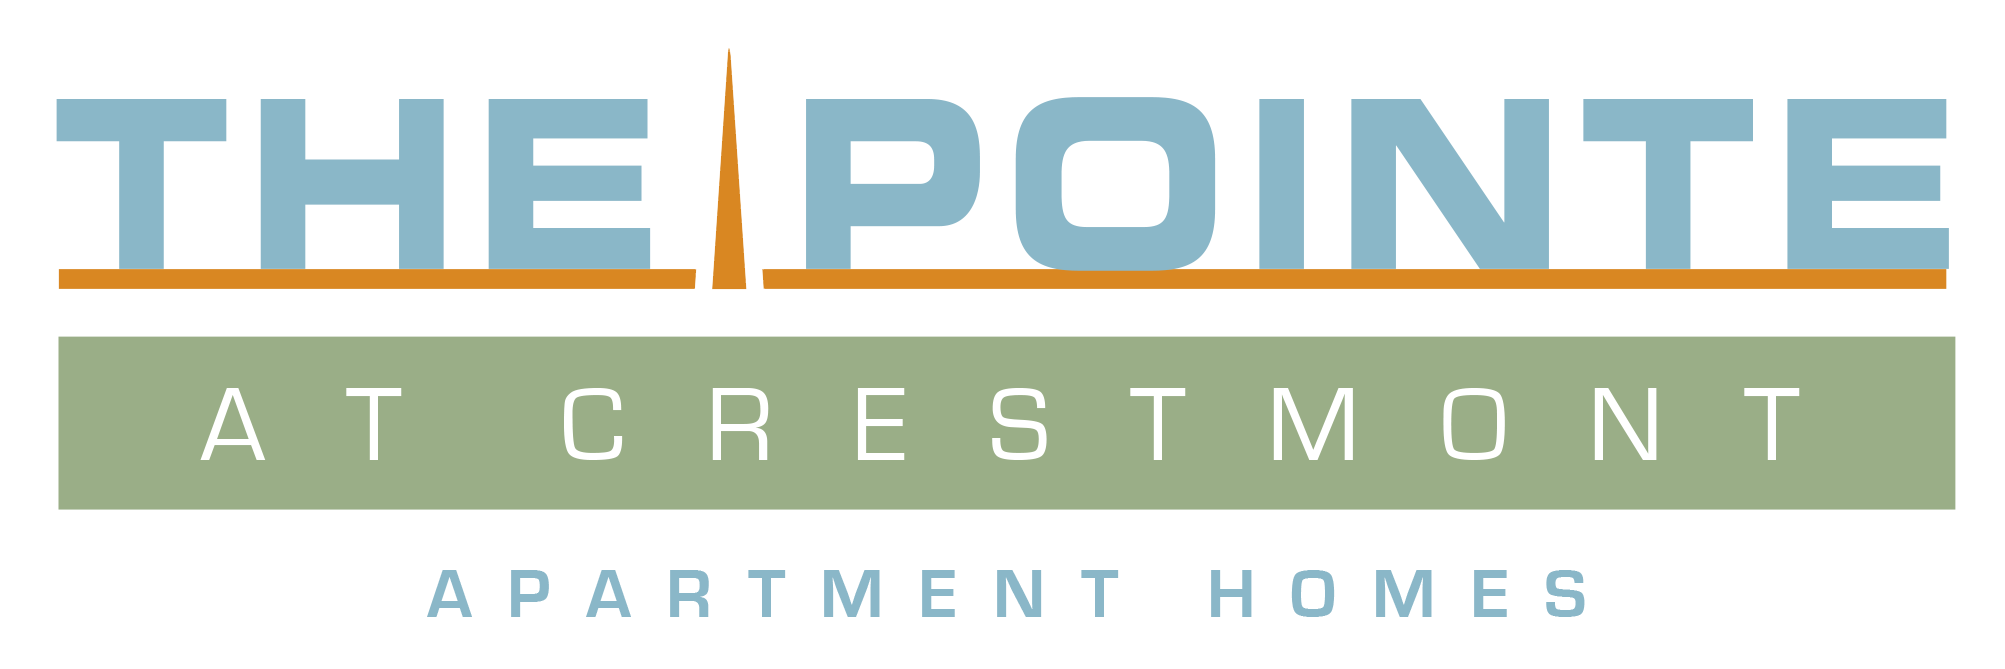 The Pointe at Crestmont logo